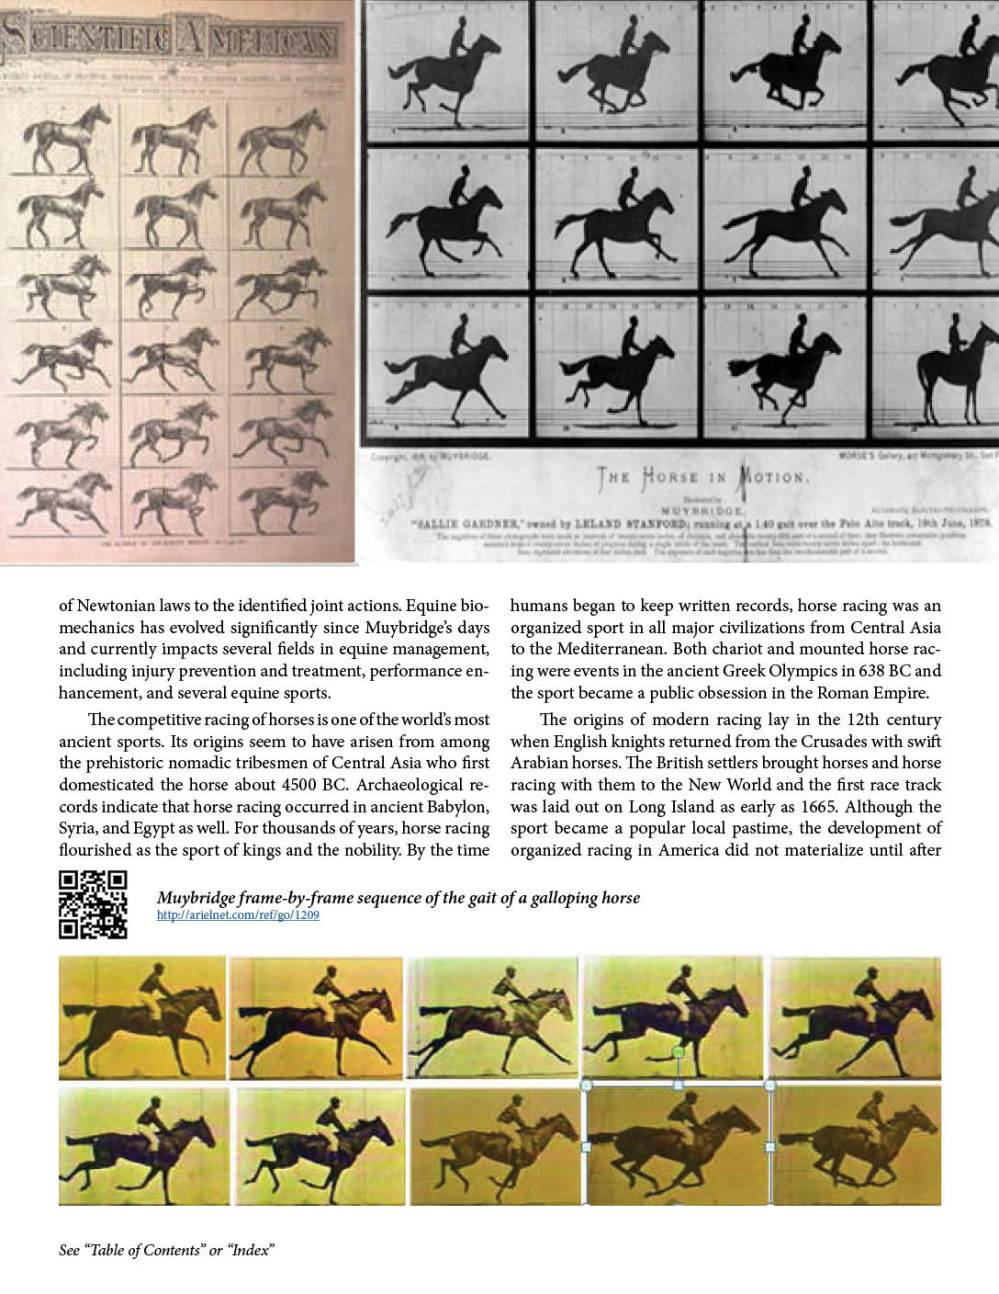 medium resolution of muybridge frame by frame sequence of the gait of a galloping horse http arielnet com ref go 1209